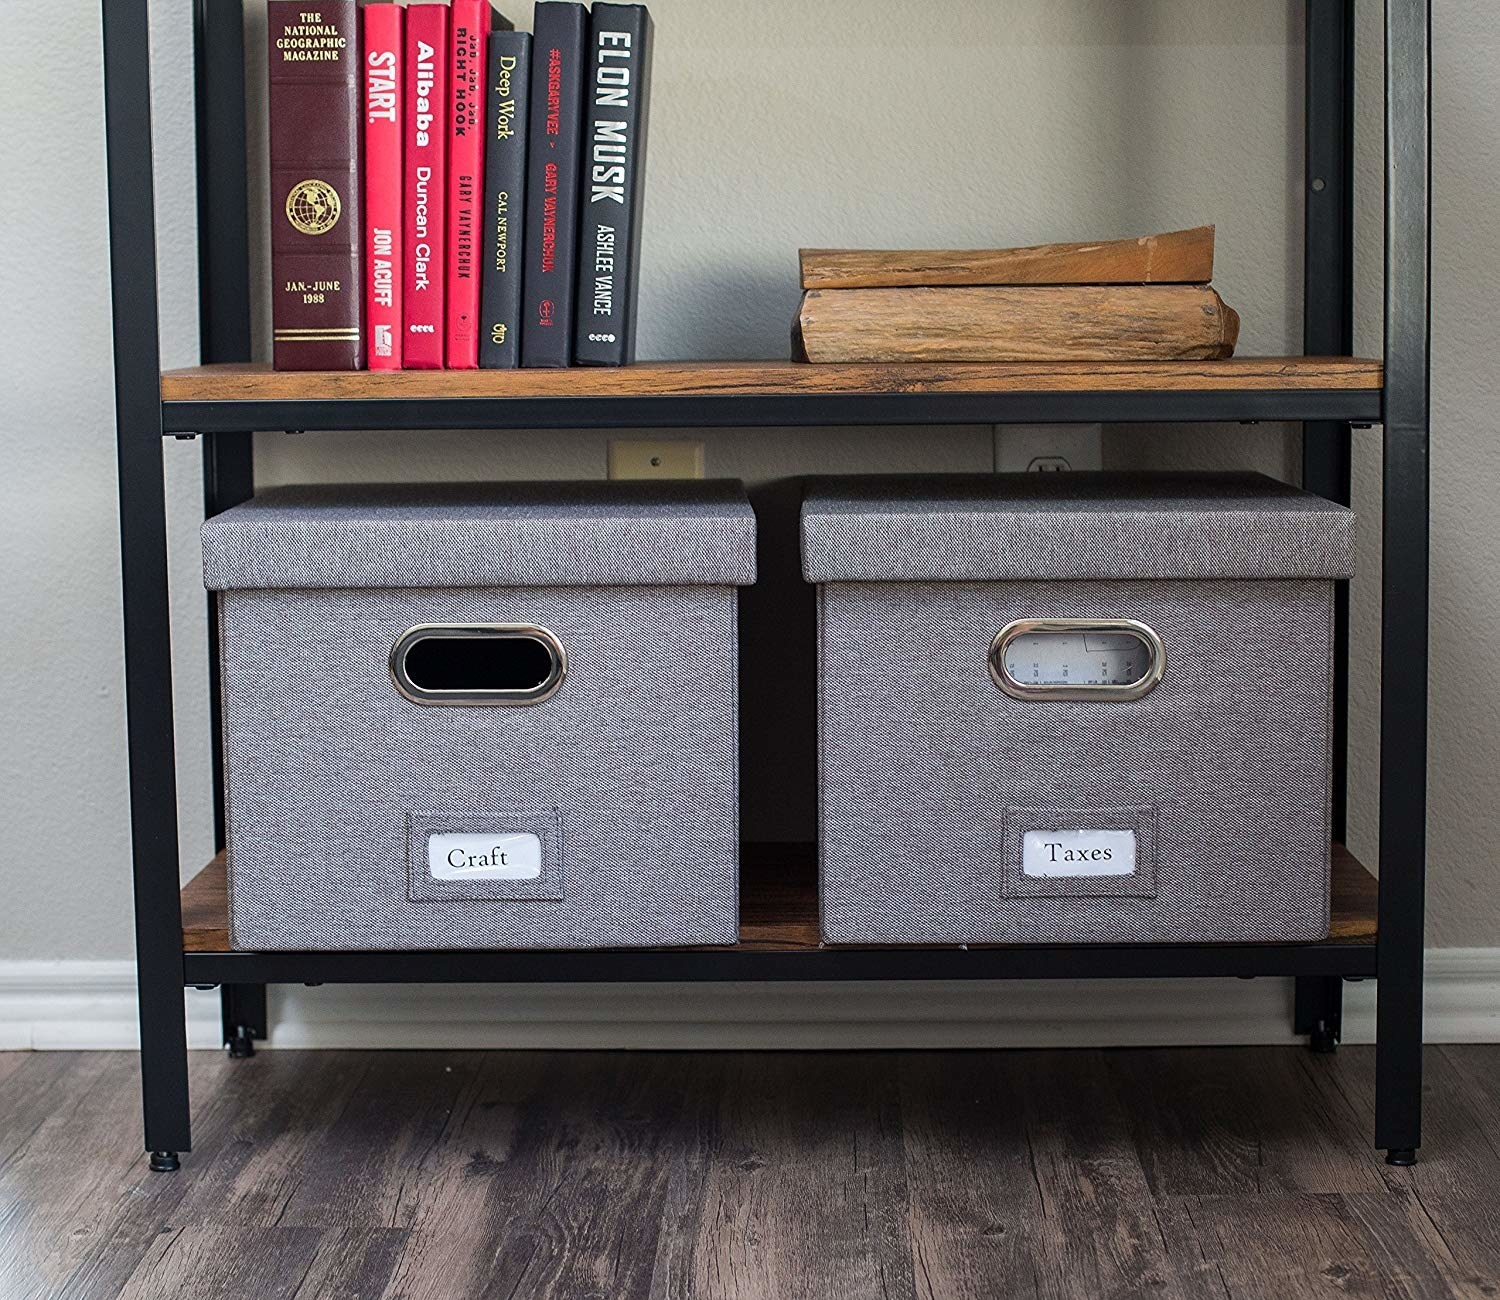 """the two grey fabric-covered boxes on a shelf, one labeled """"craft"""" and the other """"taxes""""; they have chrome-lined handle slots"""